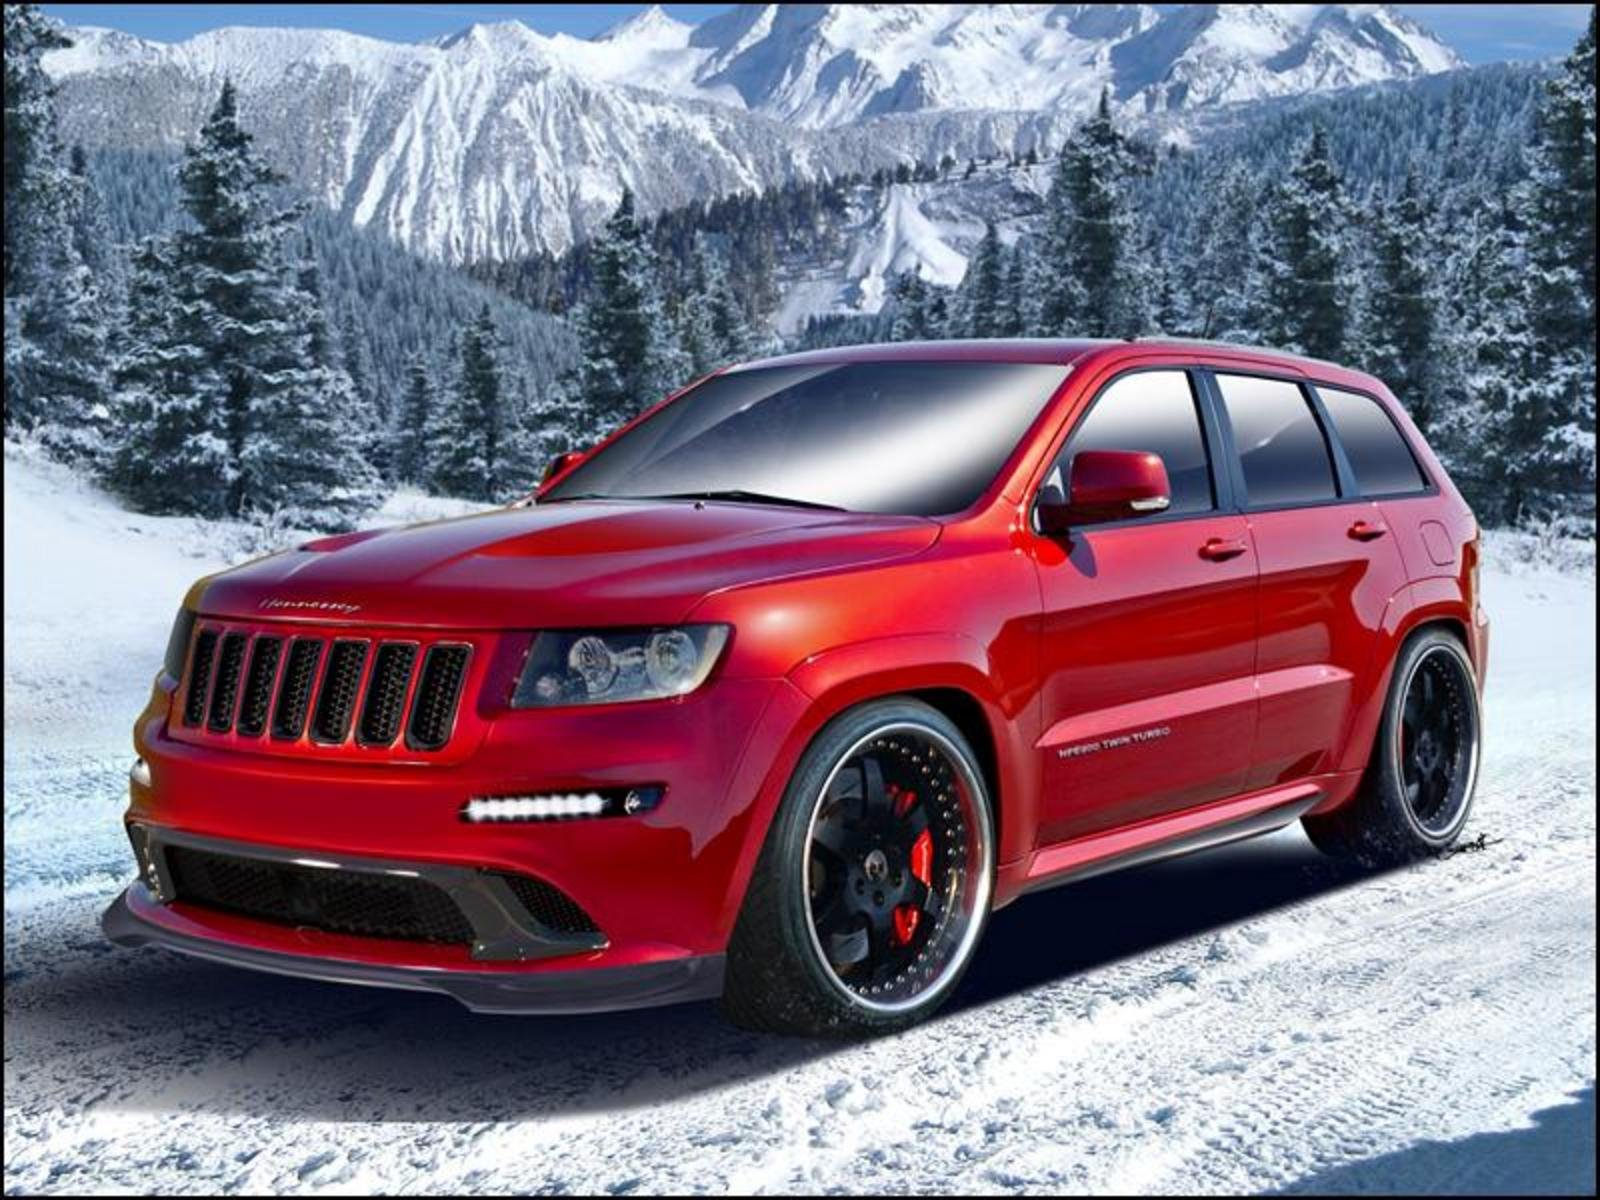 top speed grand new veloz agya trd merah 2012 jeep cherokee srt8 by hennessey review